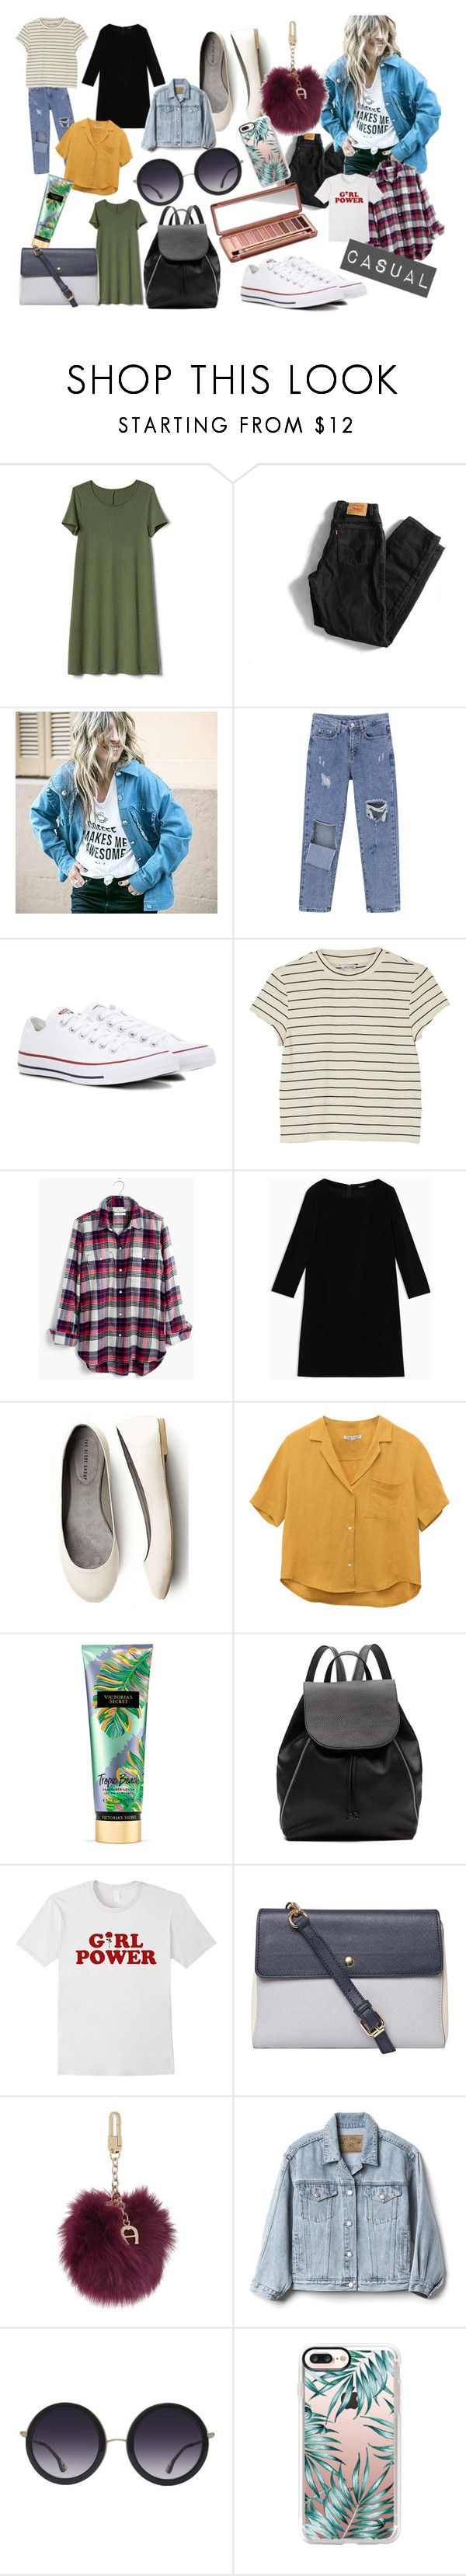 """""""casual look"""" by karimo-rimo on Polyvore featuring Gap, Levi's, Converse, Monki, Madewell, Max&Co., Victoria's Secret, Witchery, Dorothy Perkins and Etienne Aigner"""